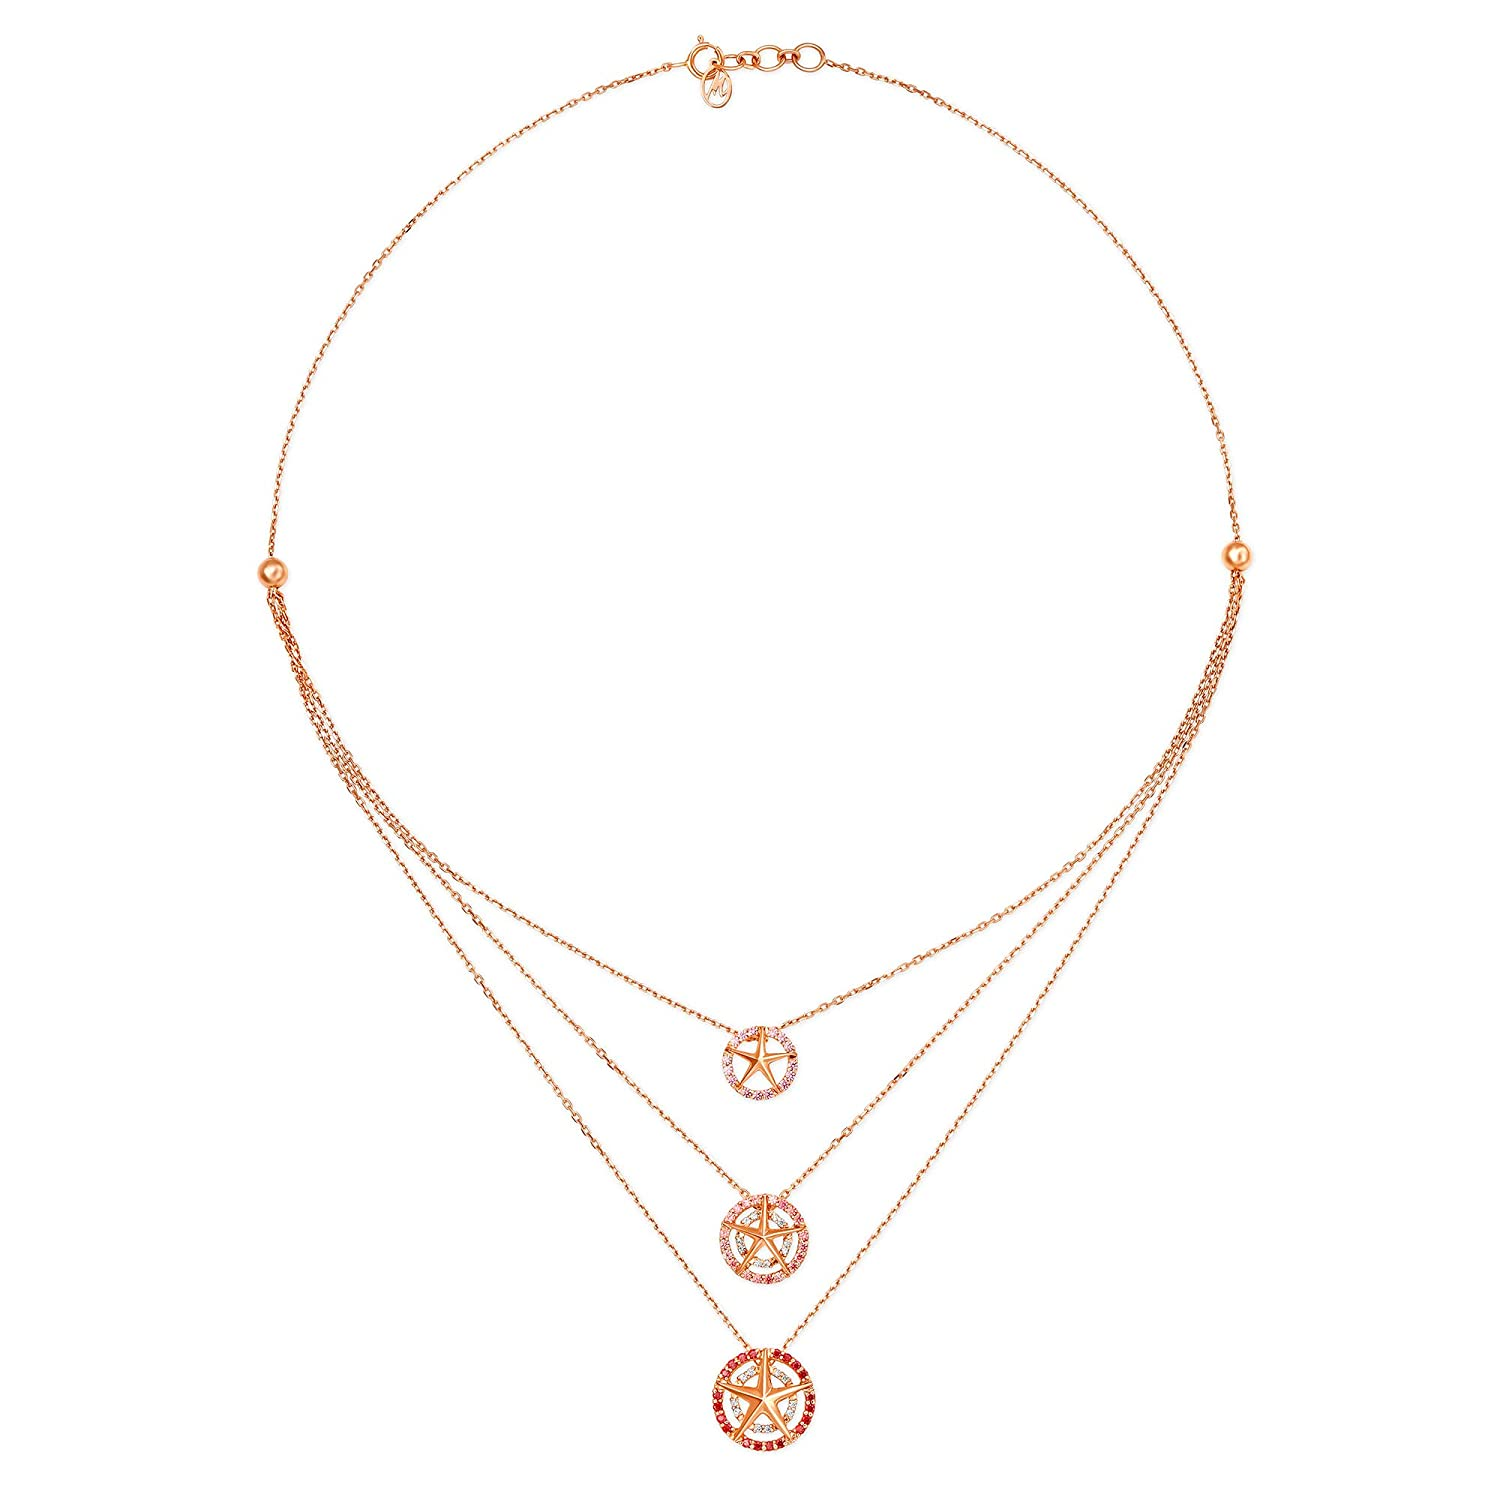 Buy Mia By Tanishq 14kt Rose Gold And Cubic Zirconia Necklace For Women Online At Low Prices In India Amazon Jewellery Store Amazon In